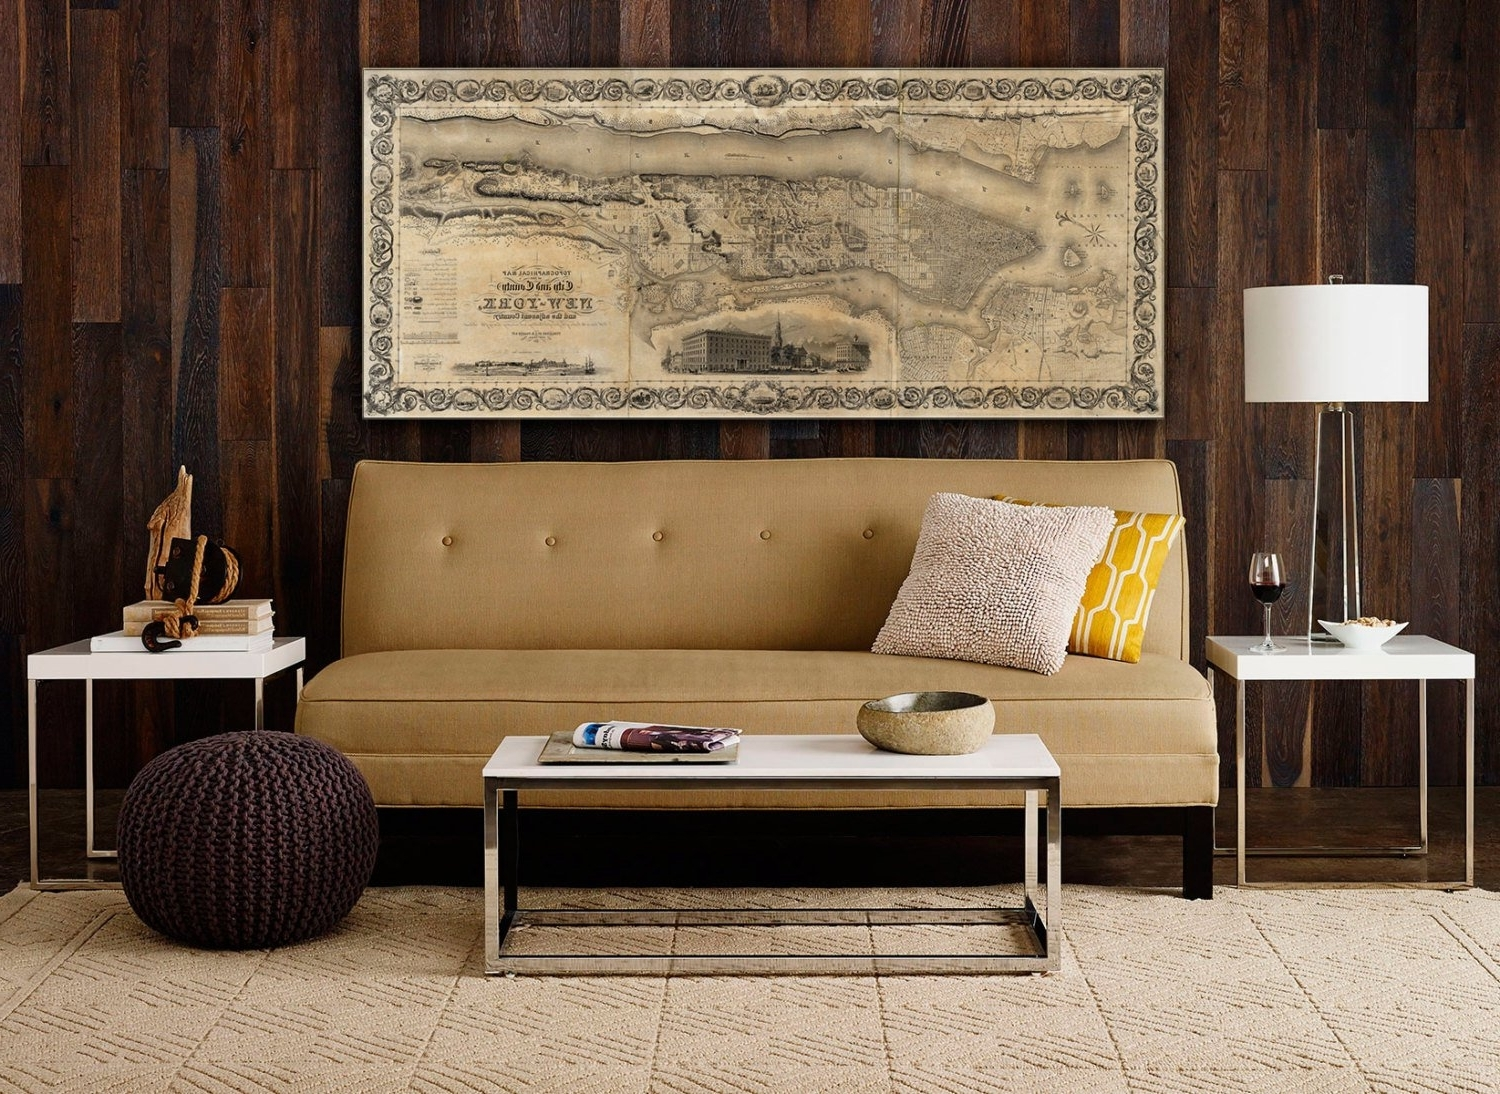 New York City Map Wall Art With Regard To Famous Giant Vintage New York City Map Old Antique Restoration Decor Style (View 11 of 15)